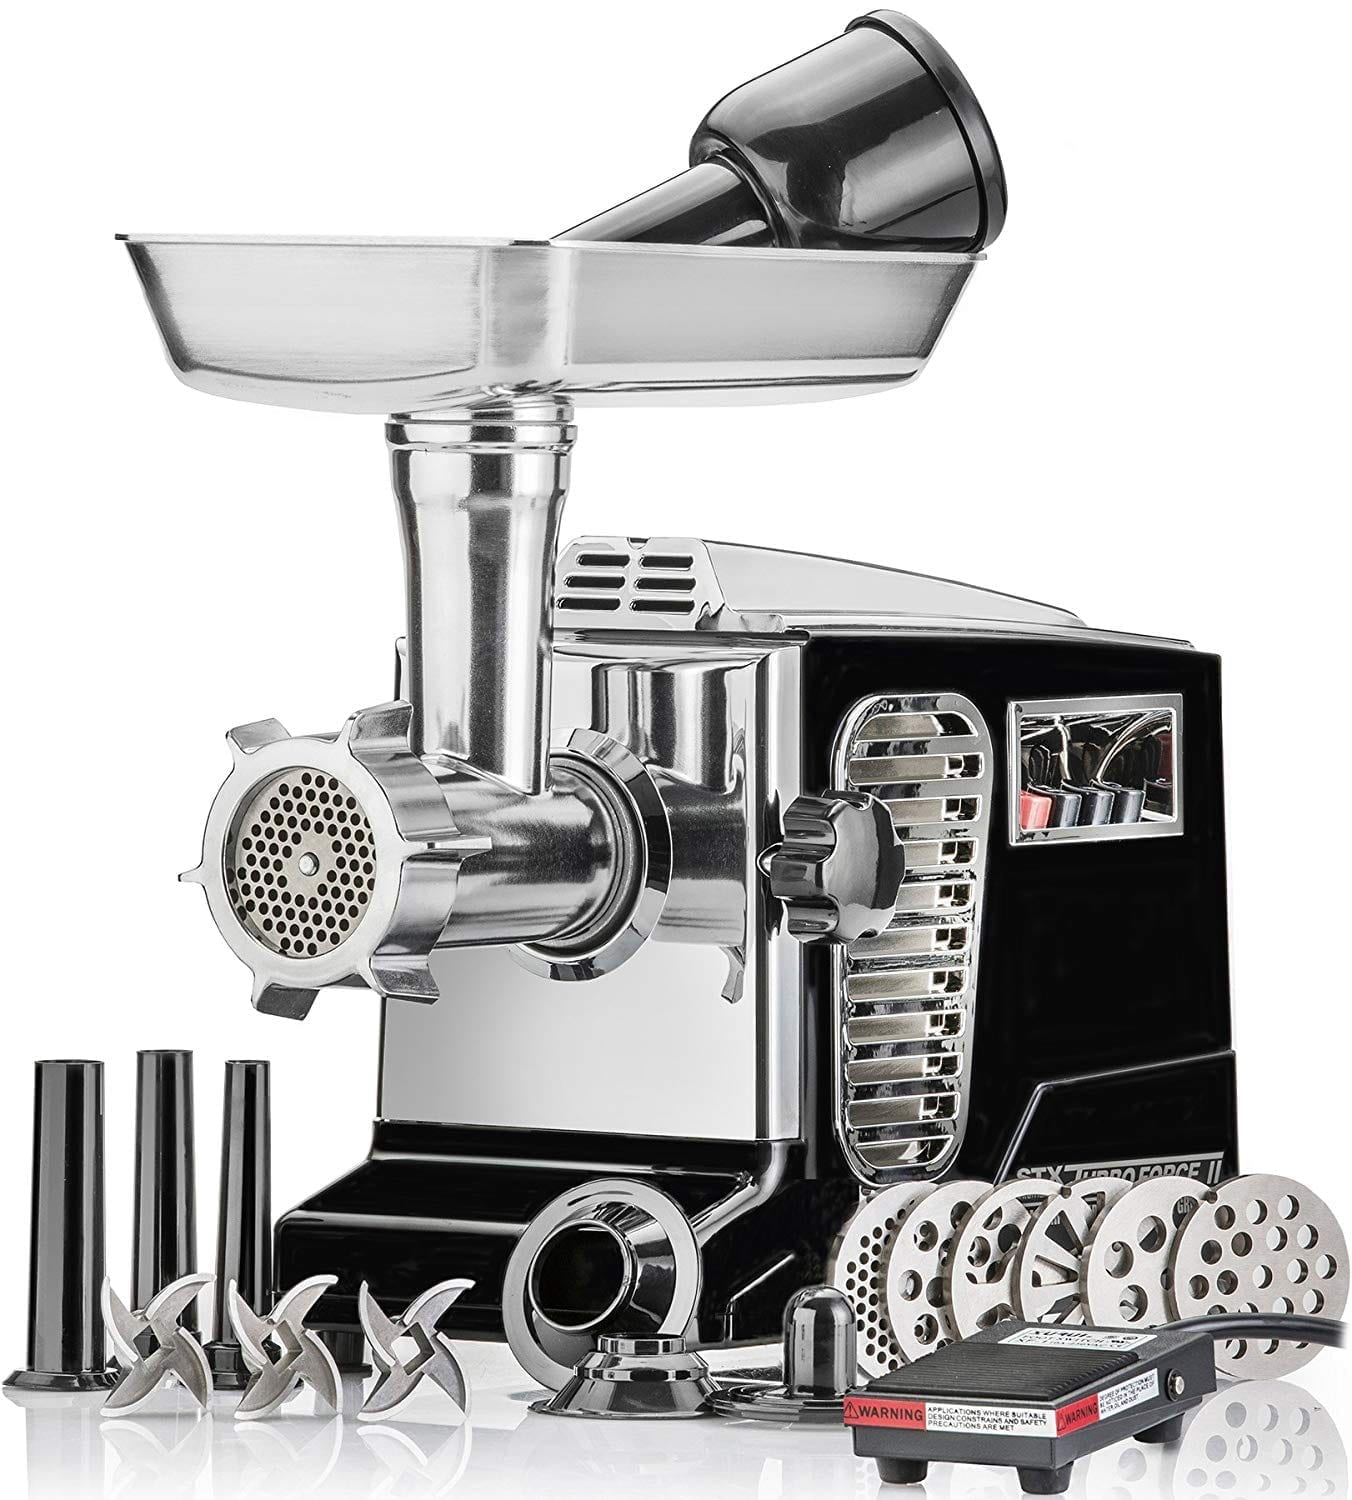 STX INTERNATIONAL STX-4000-TB2-PD Electric Meat Grinder